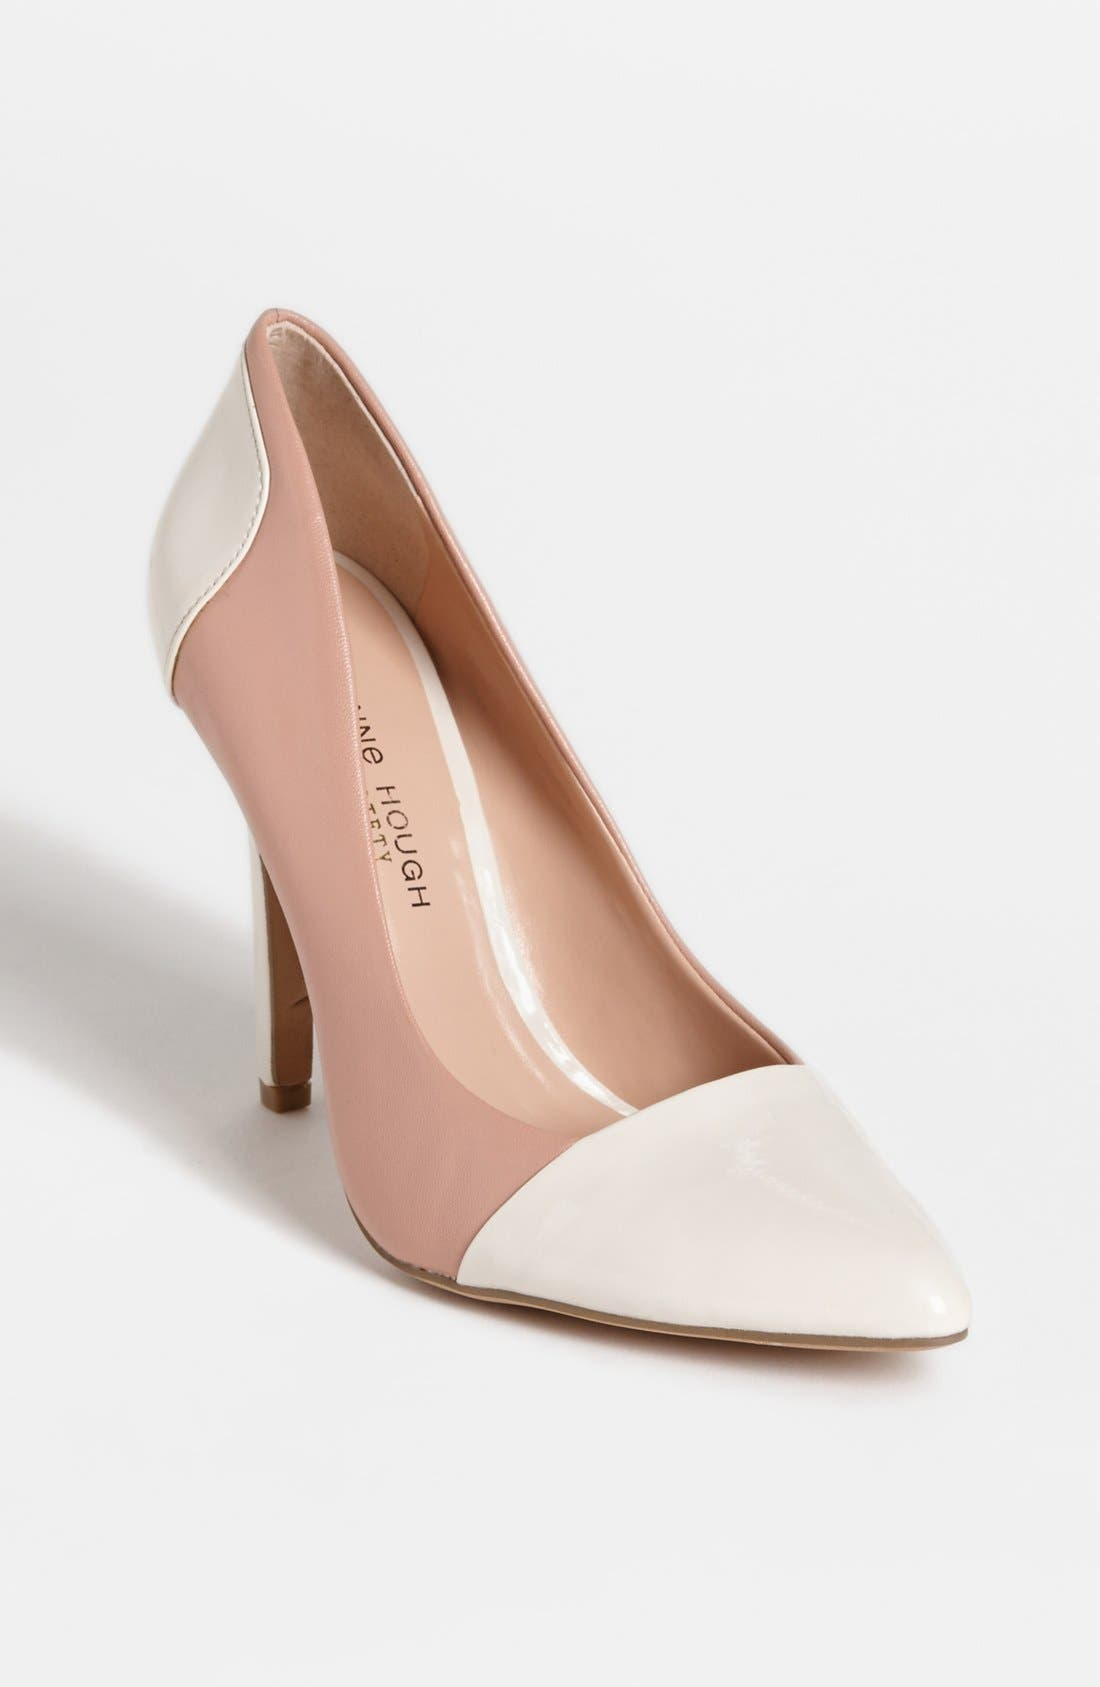 Main Image - Julianne Hough for Sole Society 'Blakeley' Pump